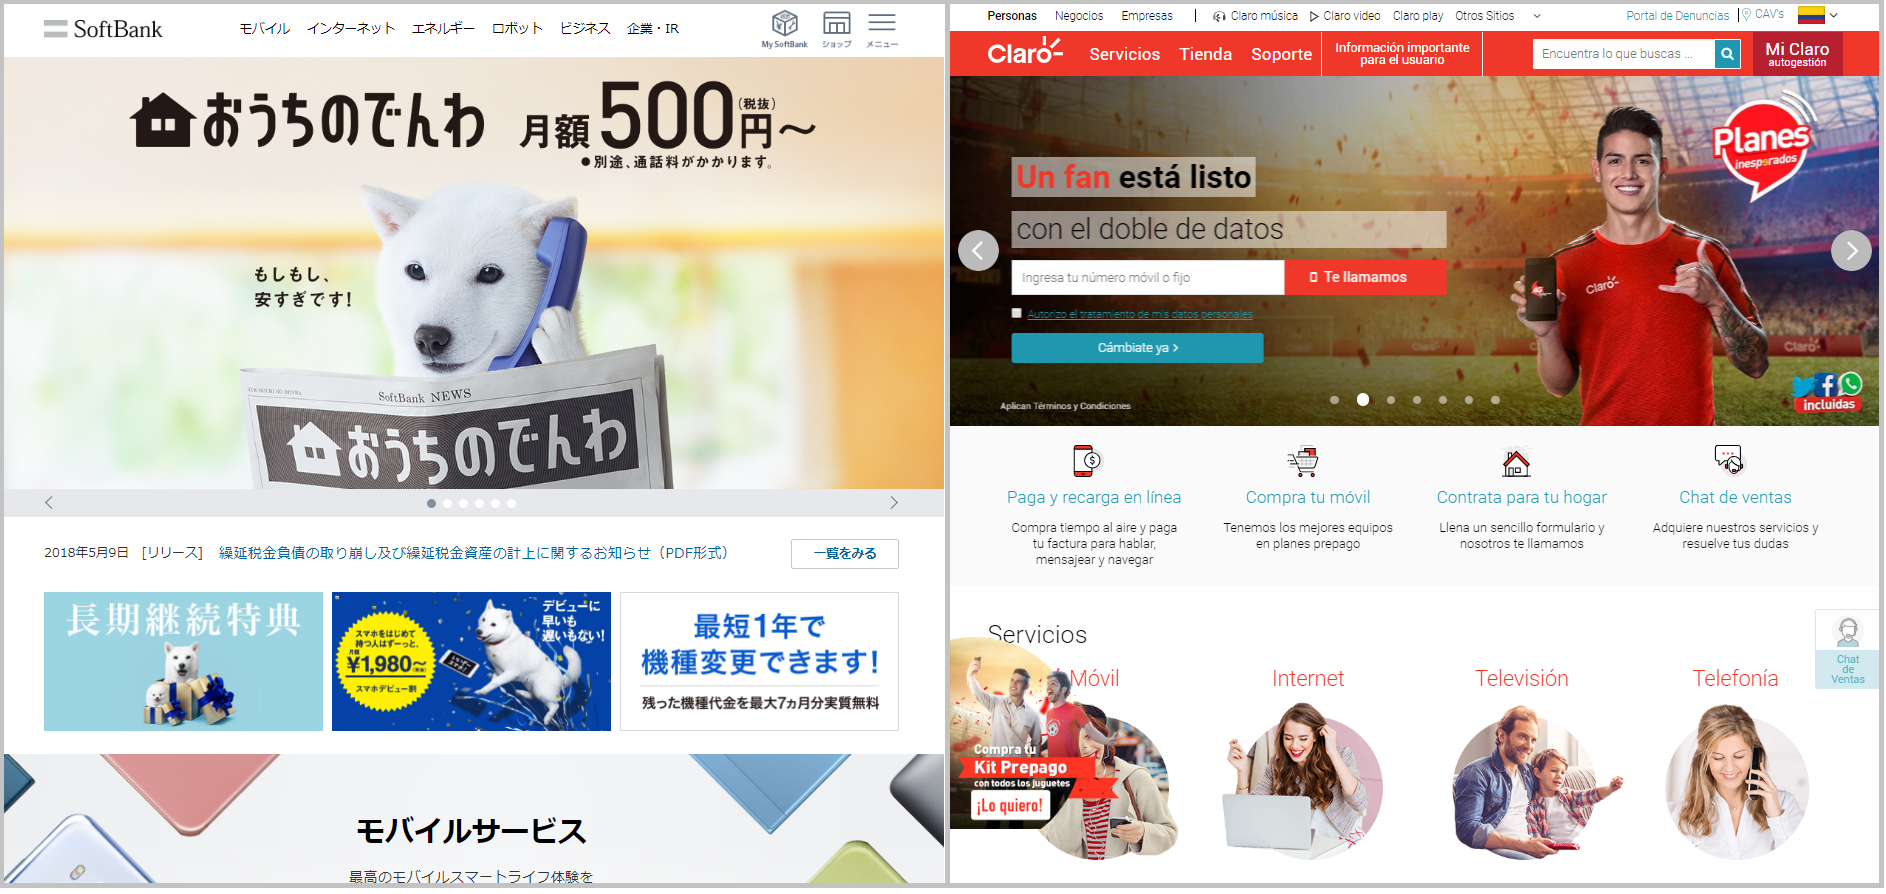 Picture shows an image of the telecommunications company websites Softbank from Japan and Claro from Colombia